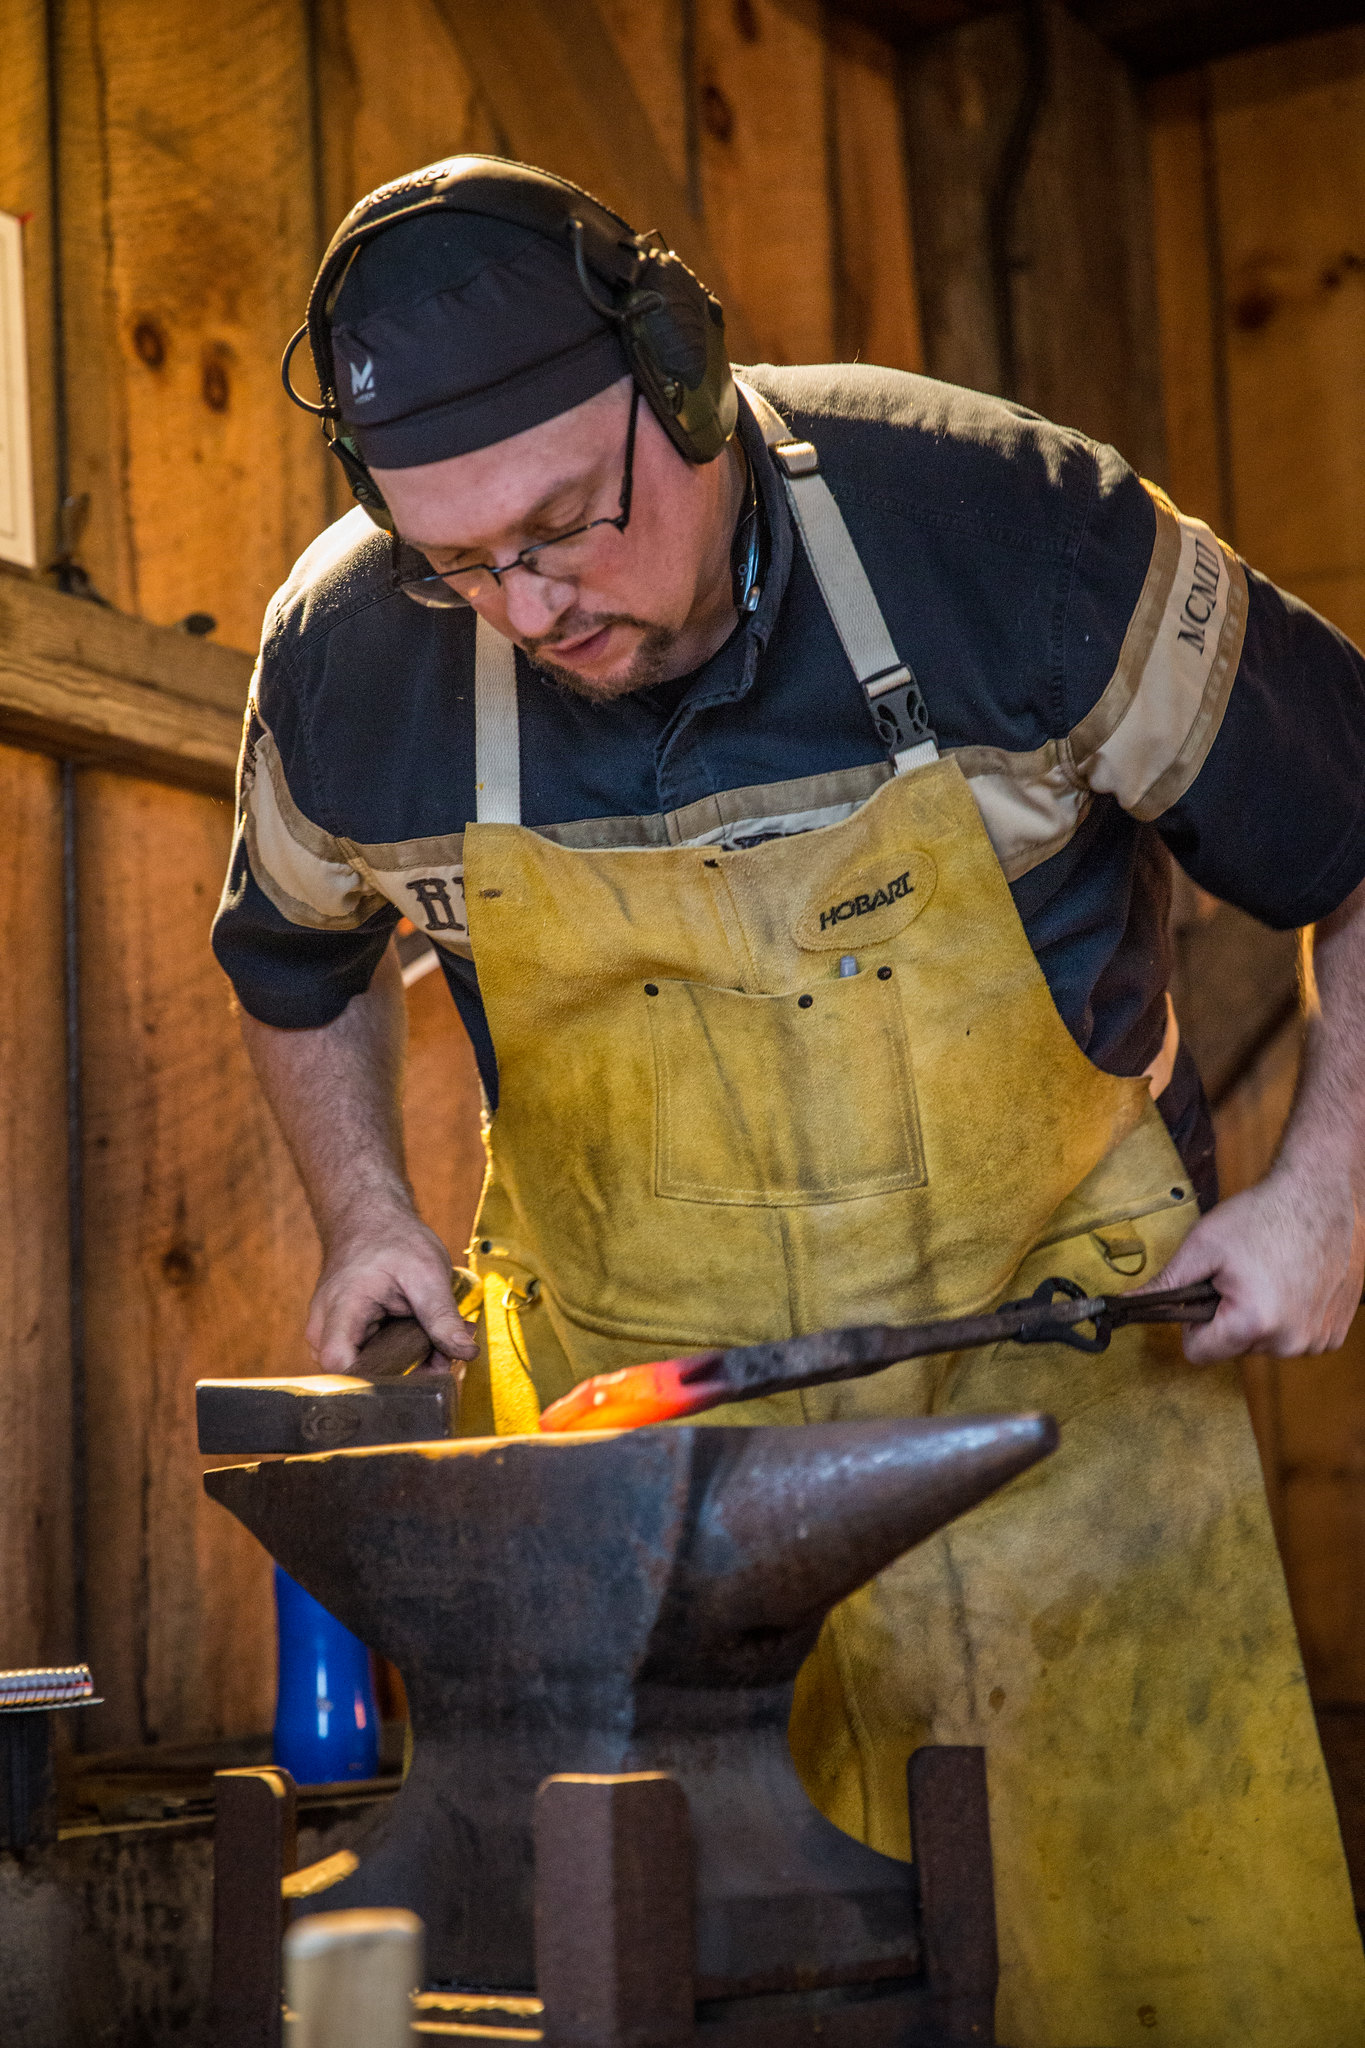 A blacksmithing student works at an anvil